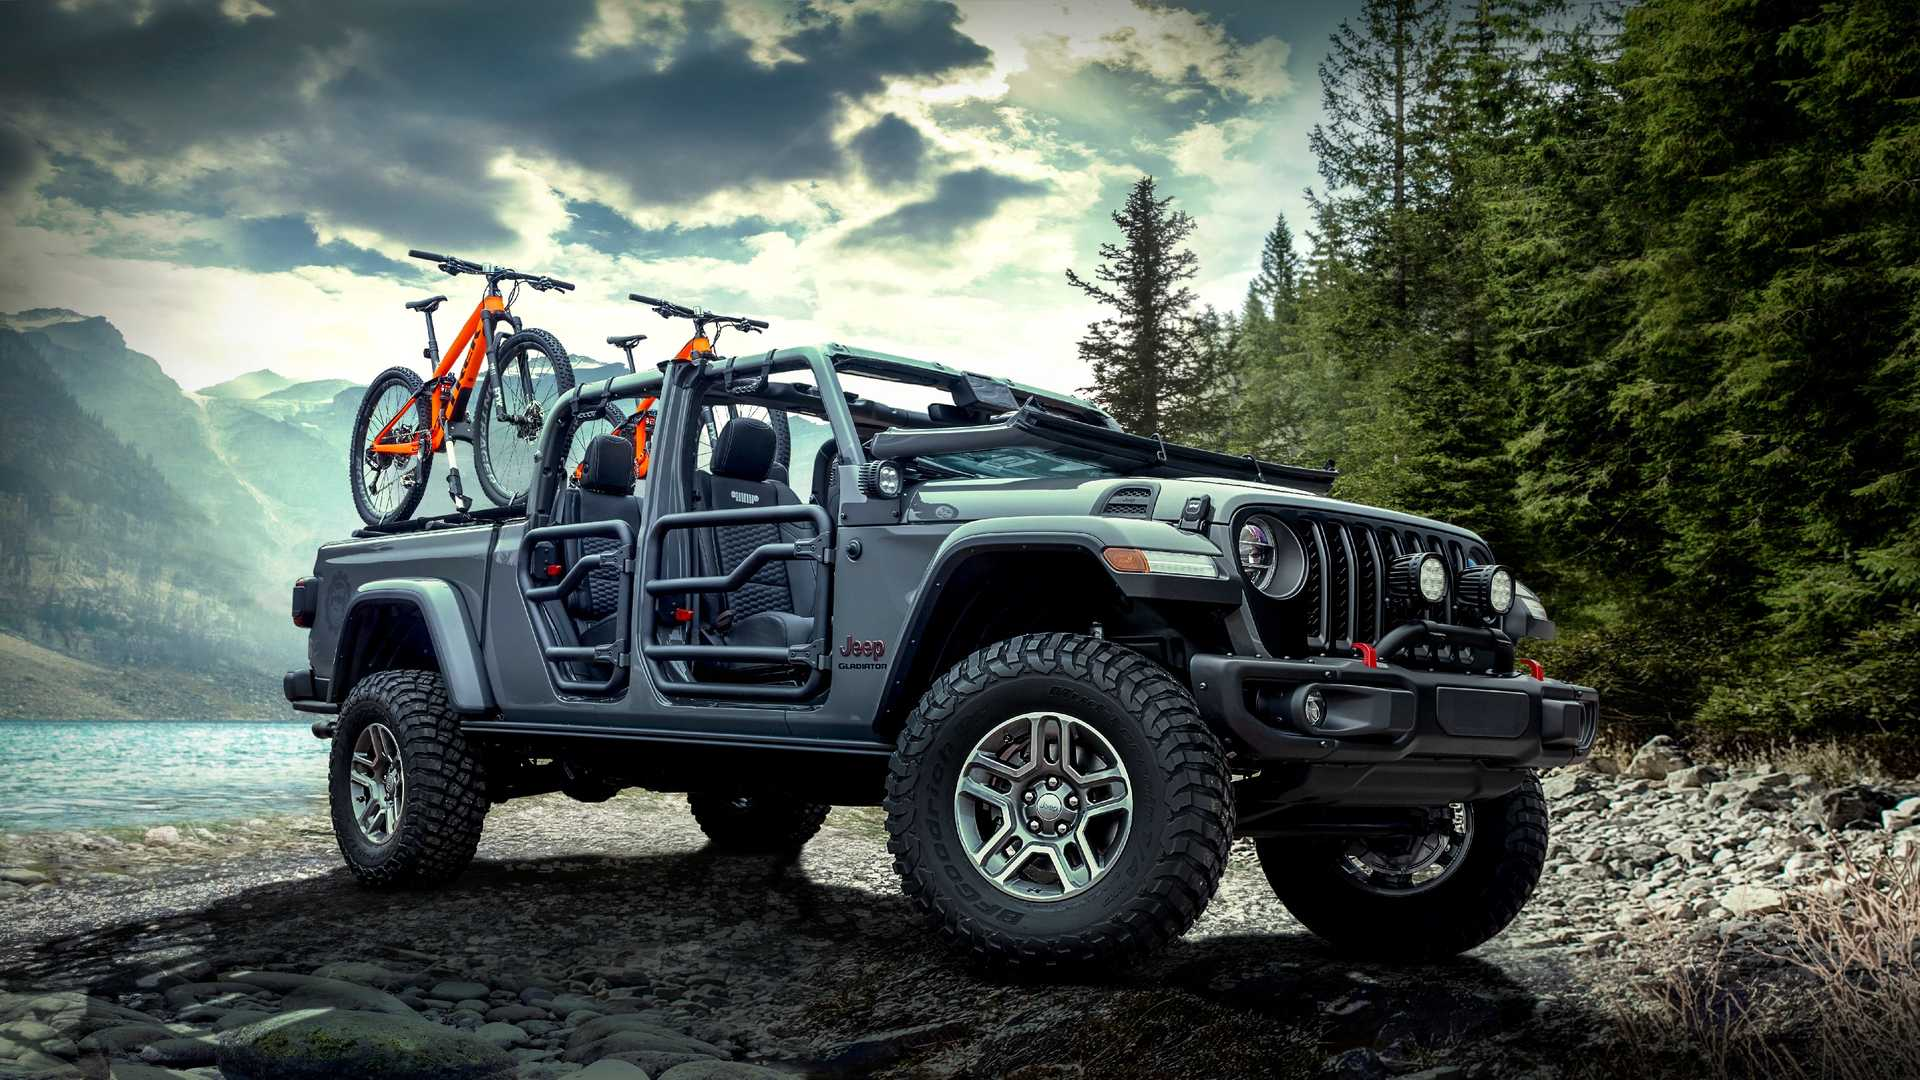 47 The 2020 Jeep Gladiator Lifted Rumors